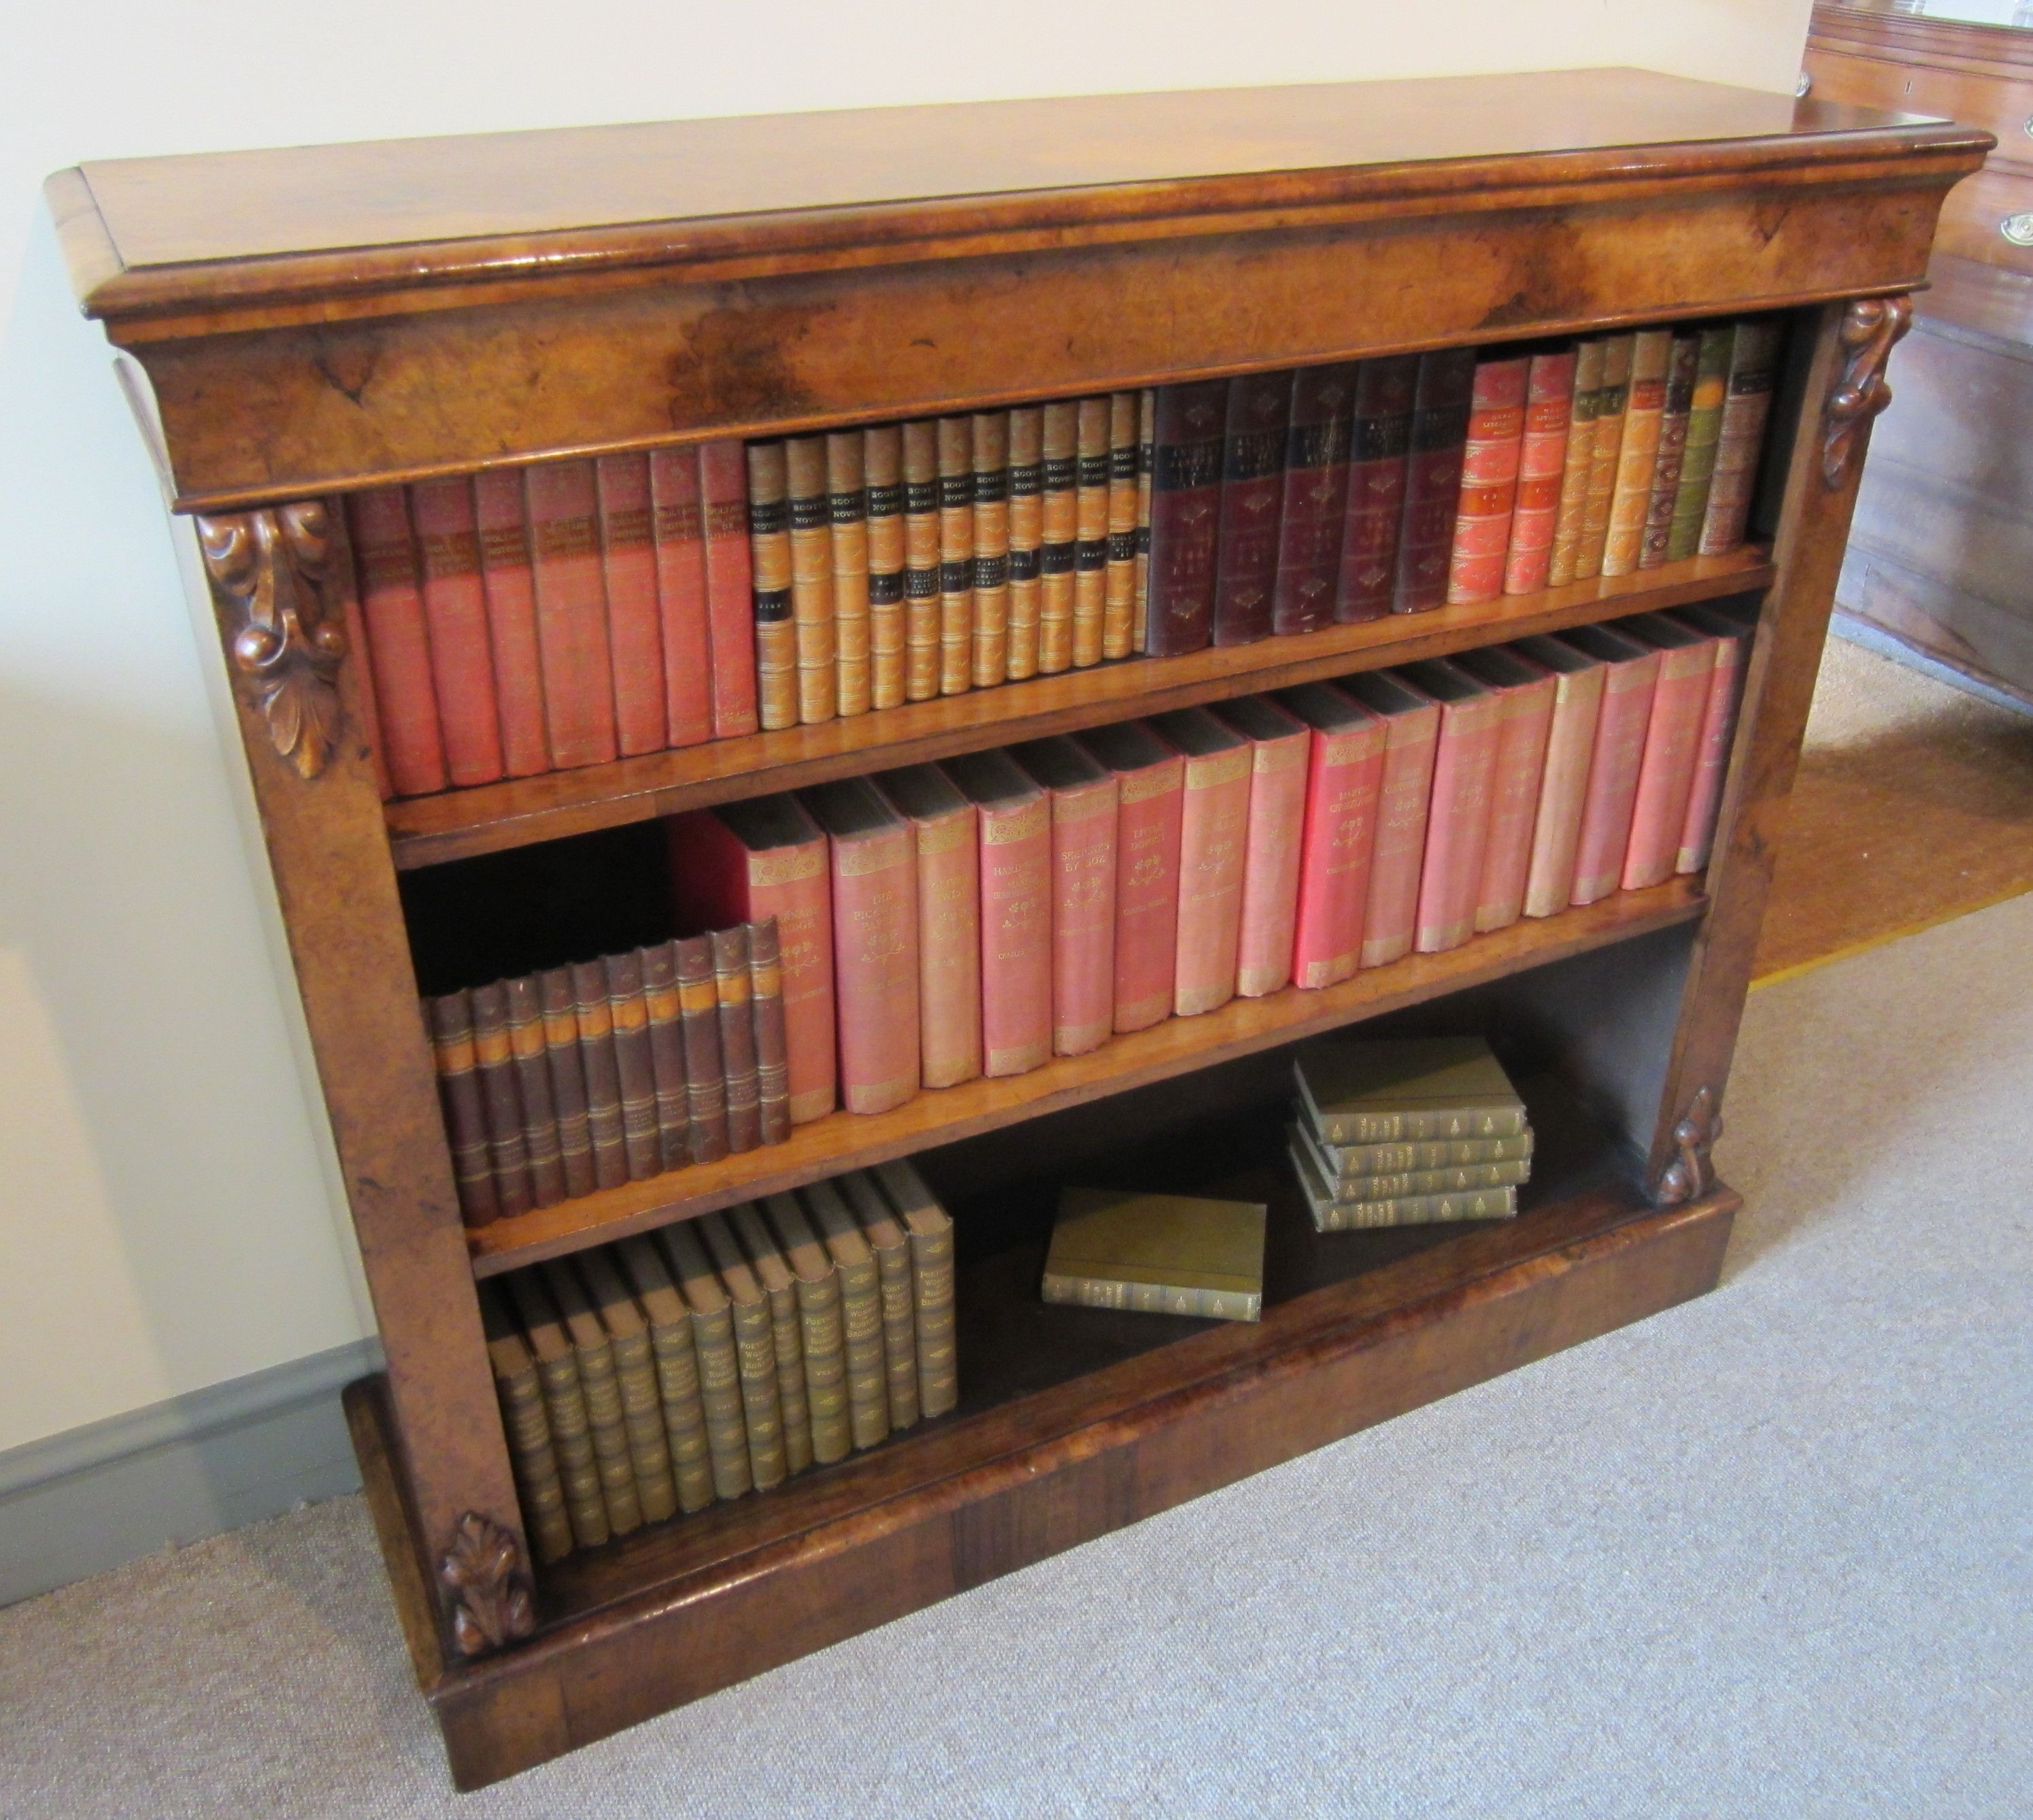 century open bookcase in burr walnut of excellent colour and figure with 2 adjustable shelves circa